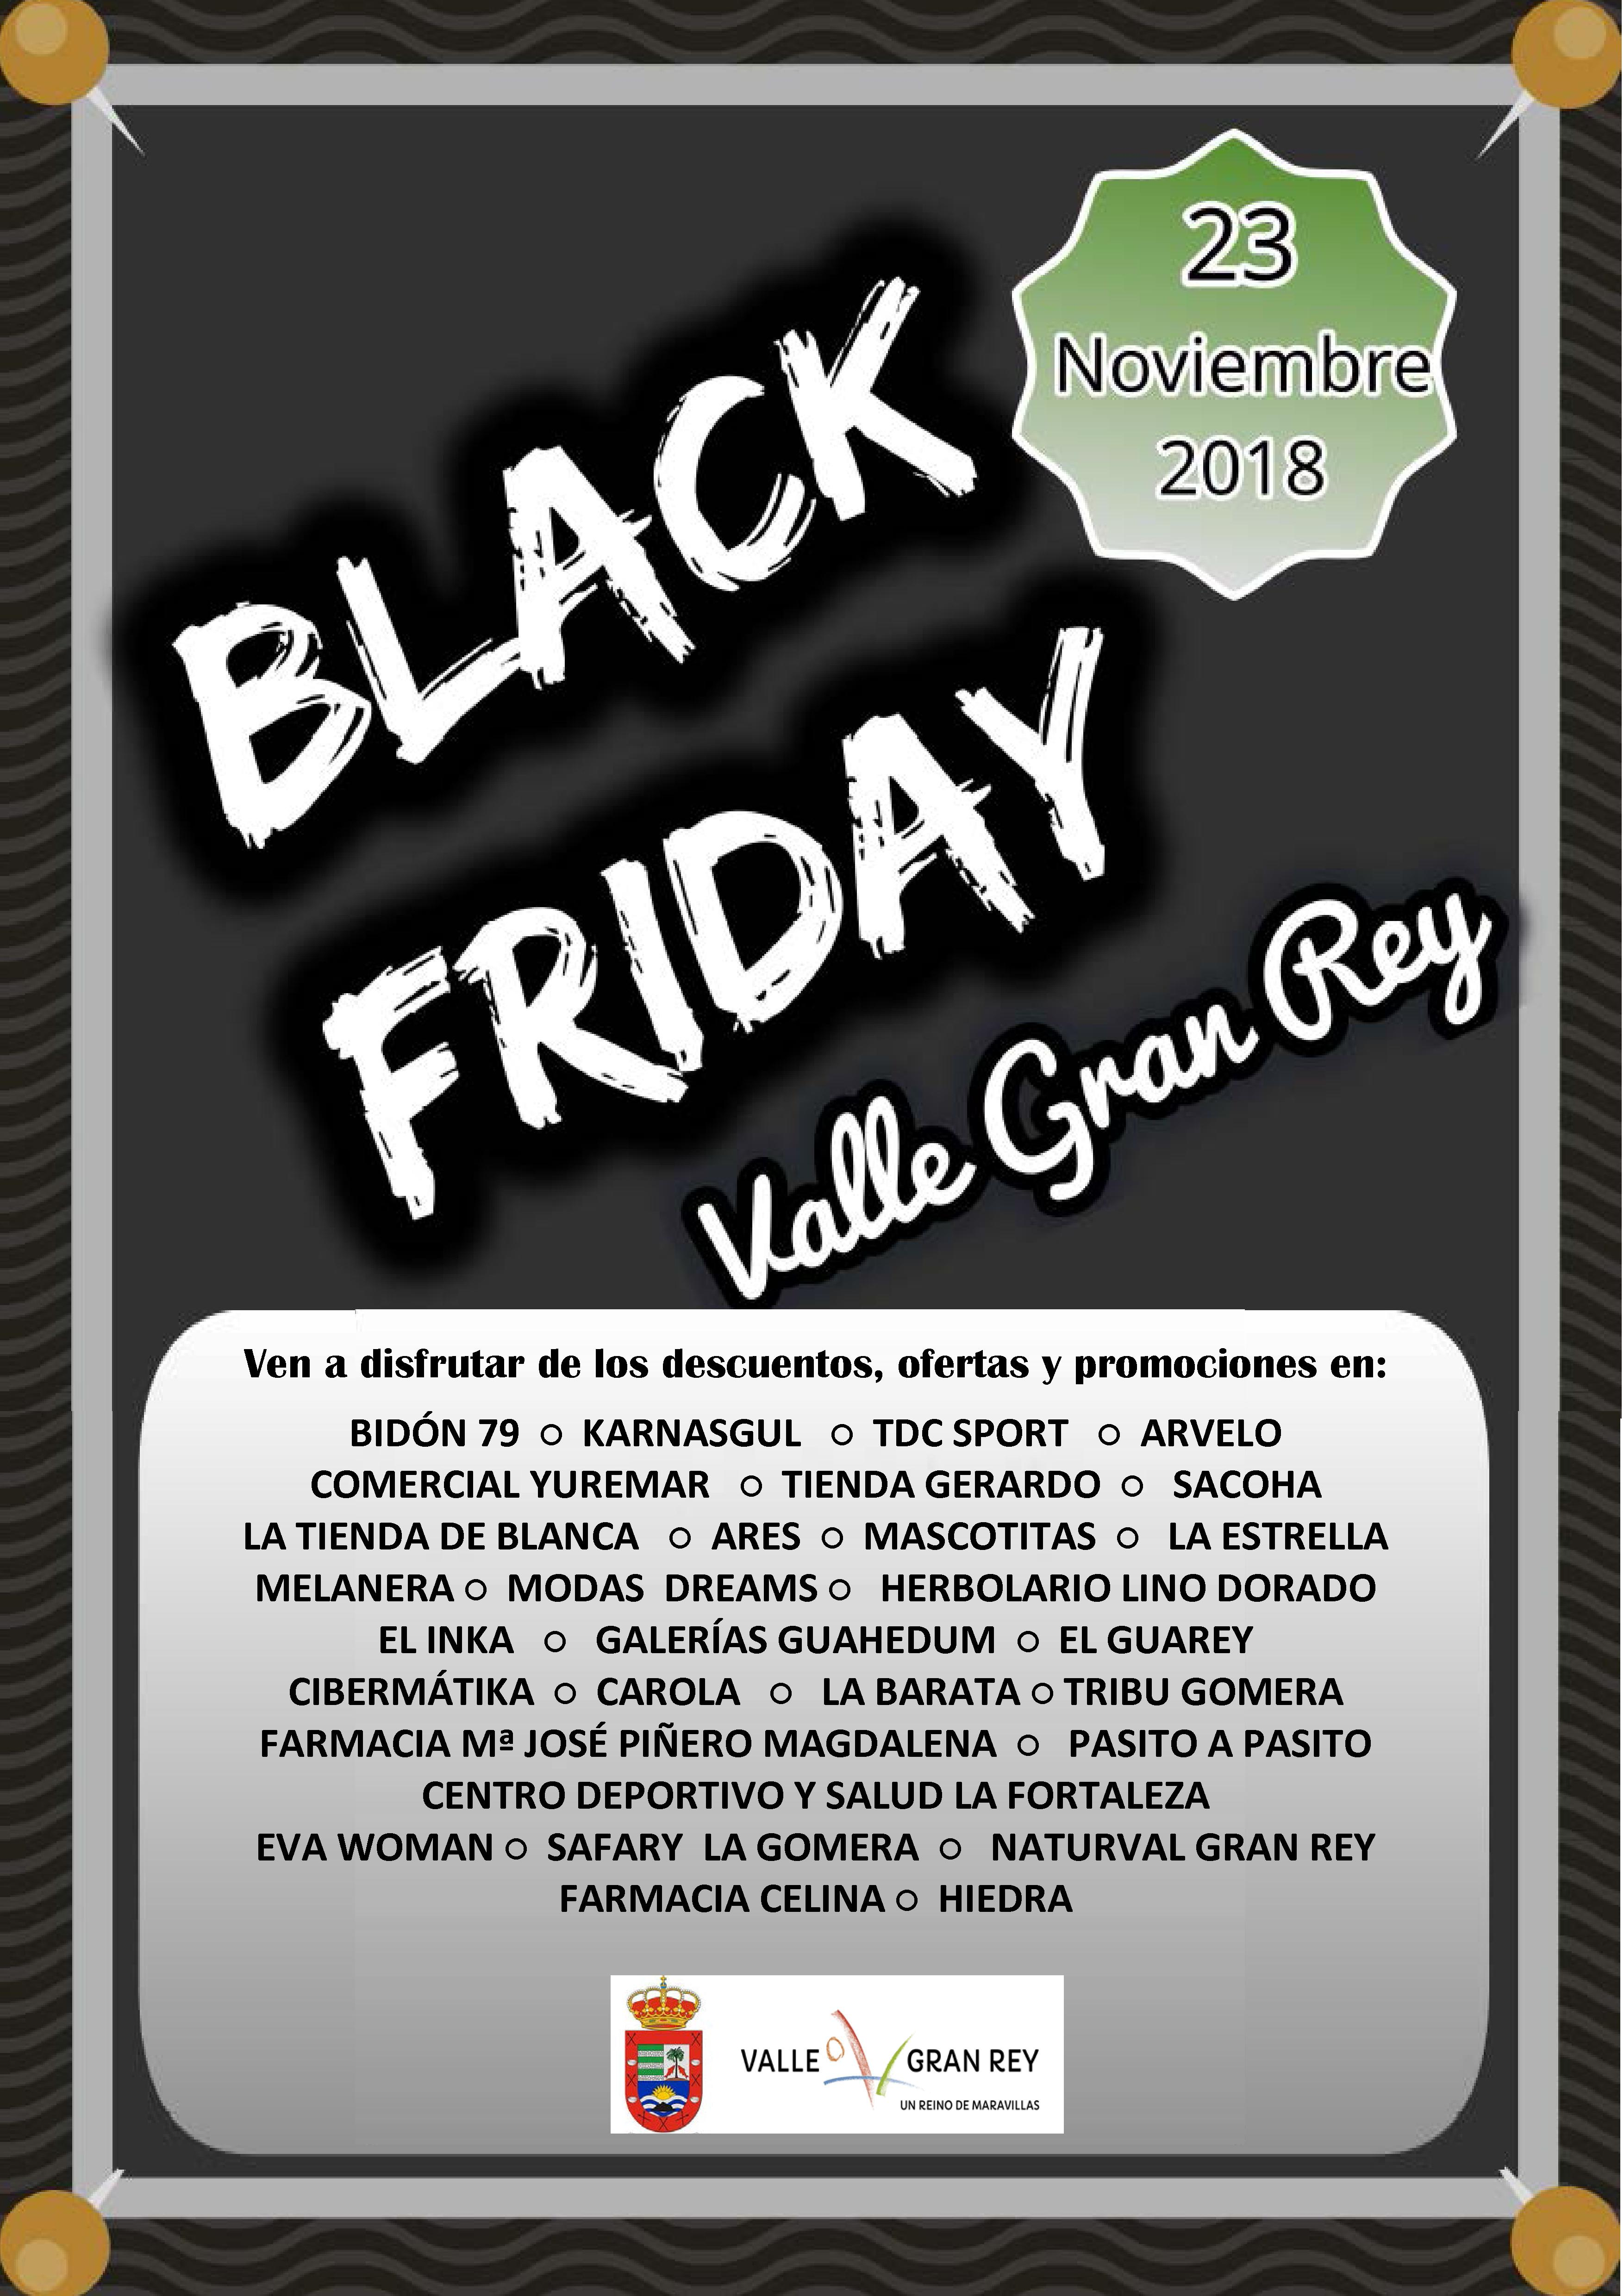 Cartel Black Friday en Valle Gran Rey